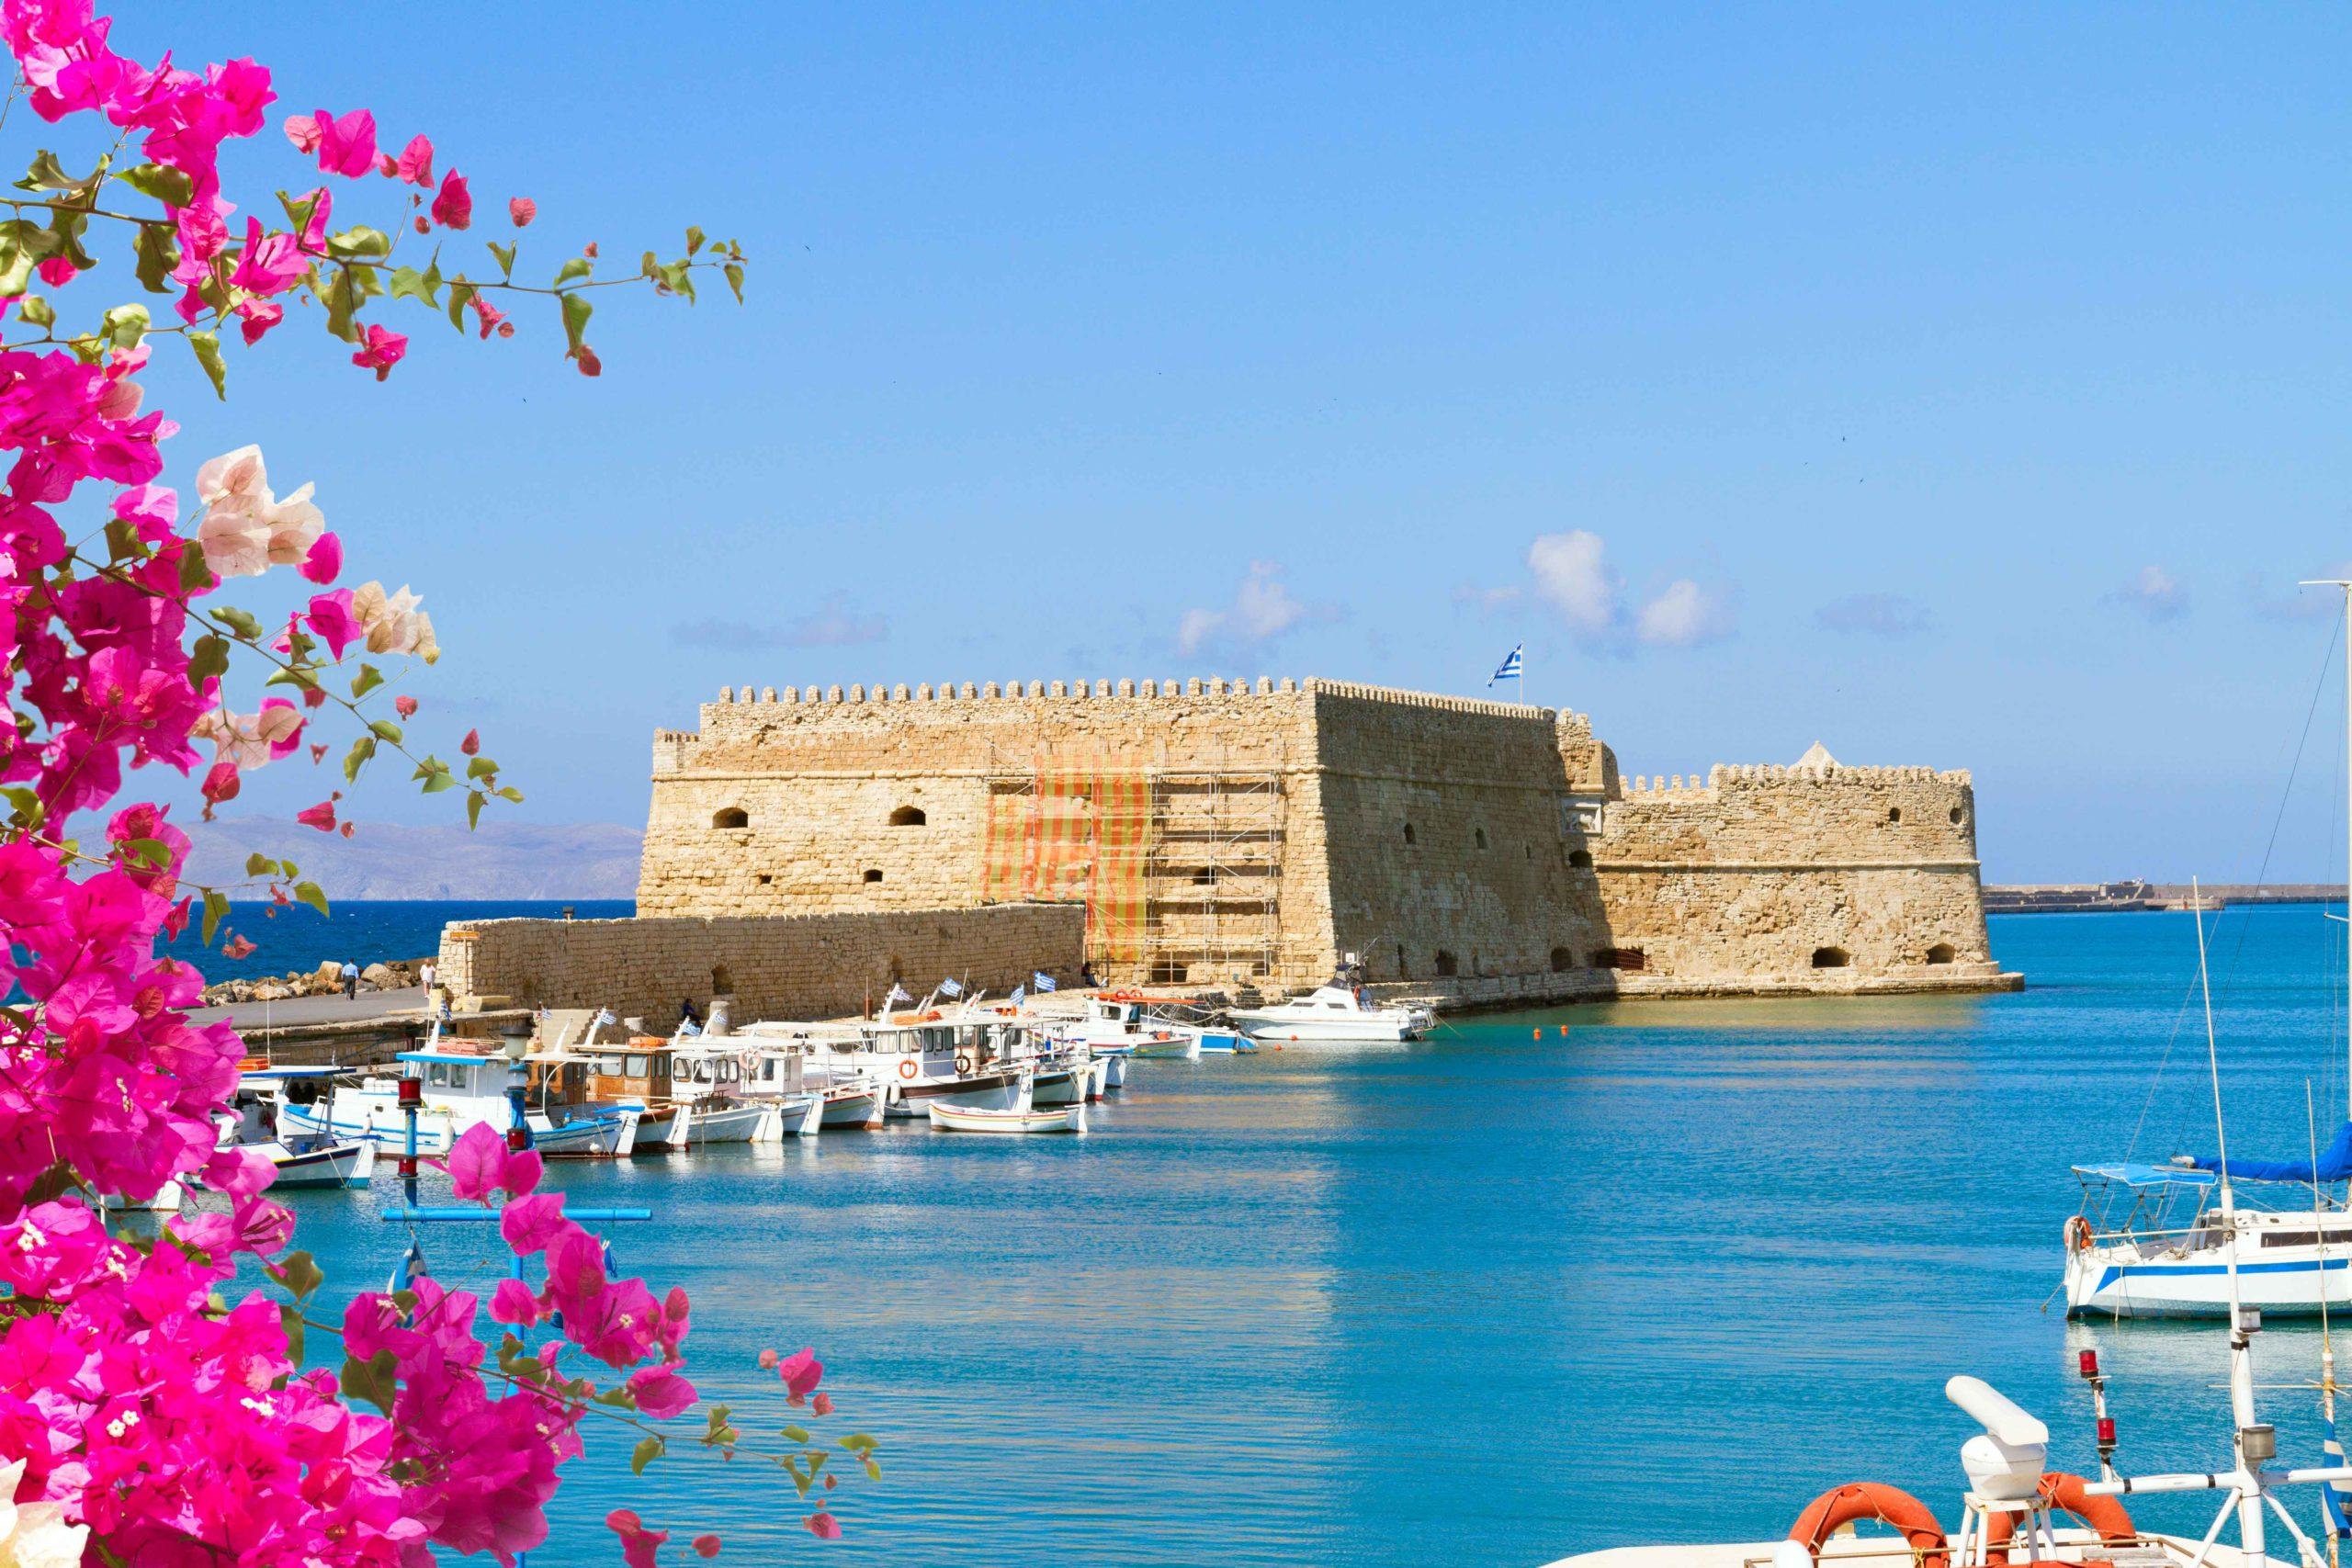 The harbour in Heraklion on the island of Crete